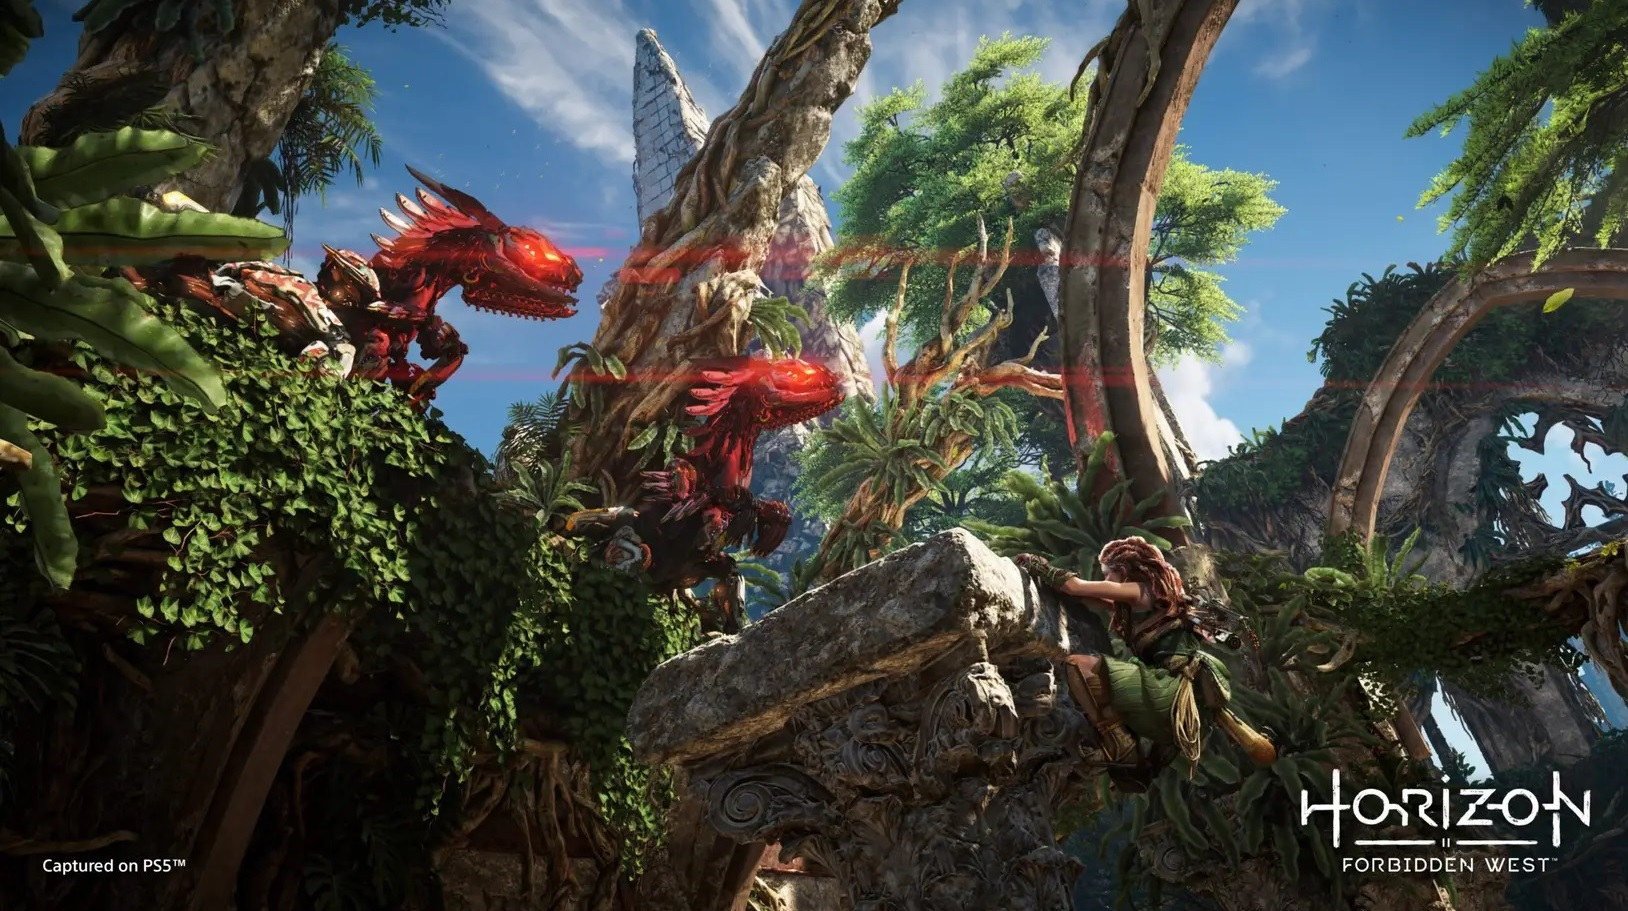 Guerrilla details new Horizon Forbidden West tools, weapons and skills - Video Games Chronicle